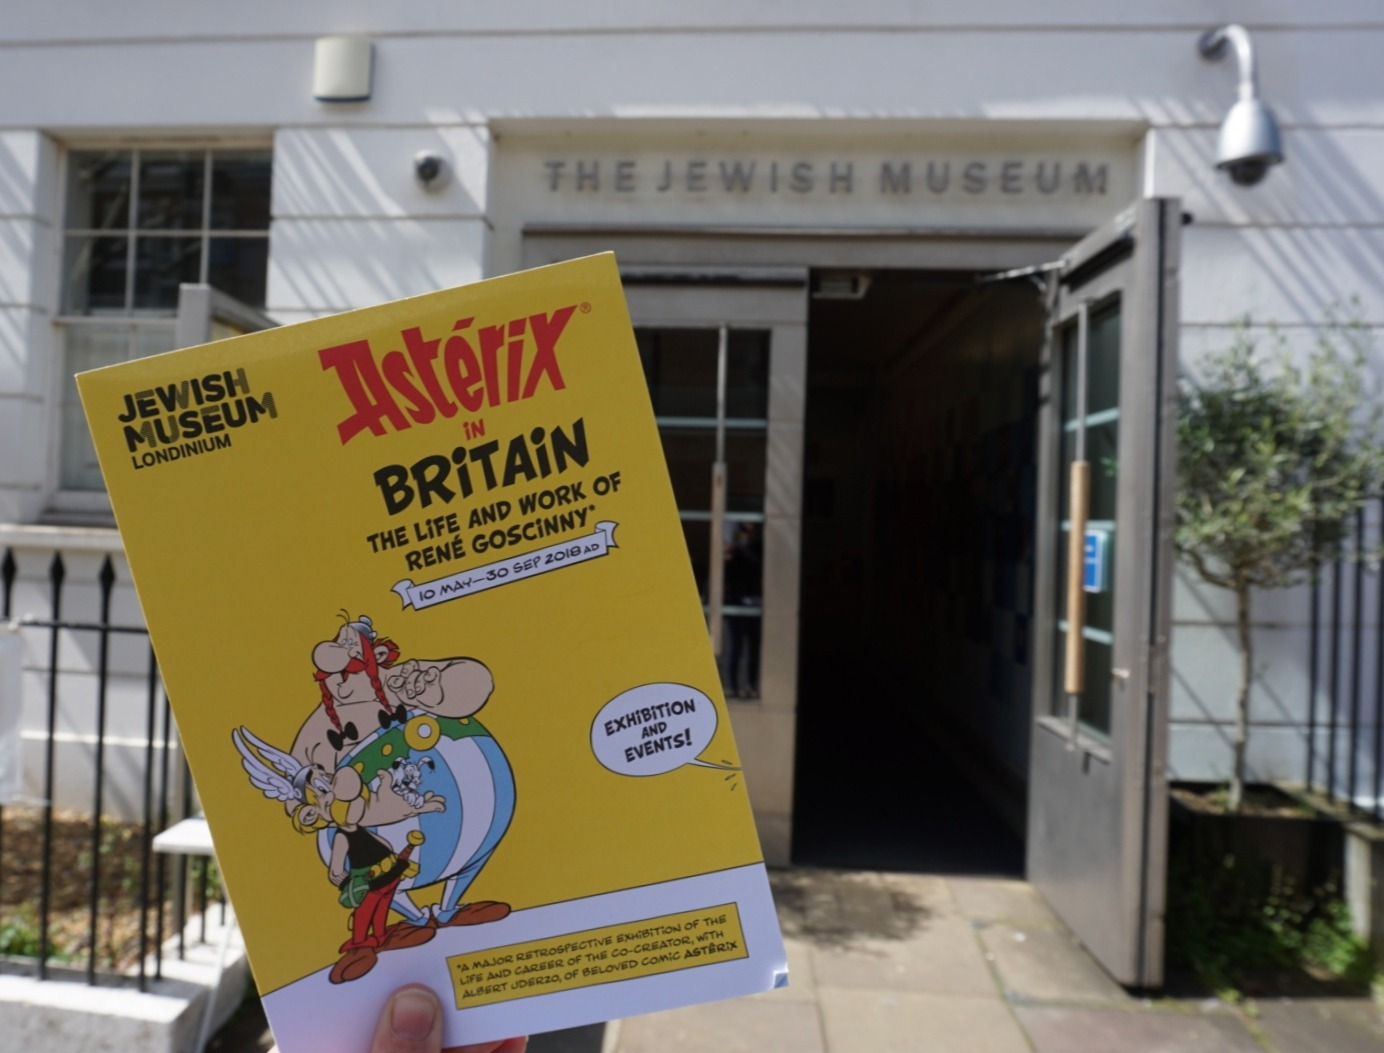 Photograph of Asterix leaflet being held up outside the Jewish Museum London entrance